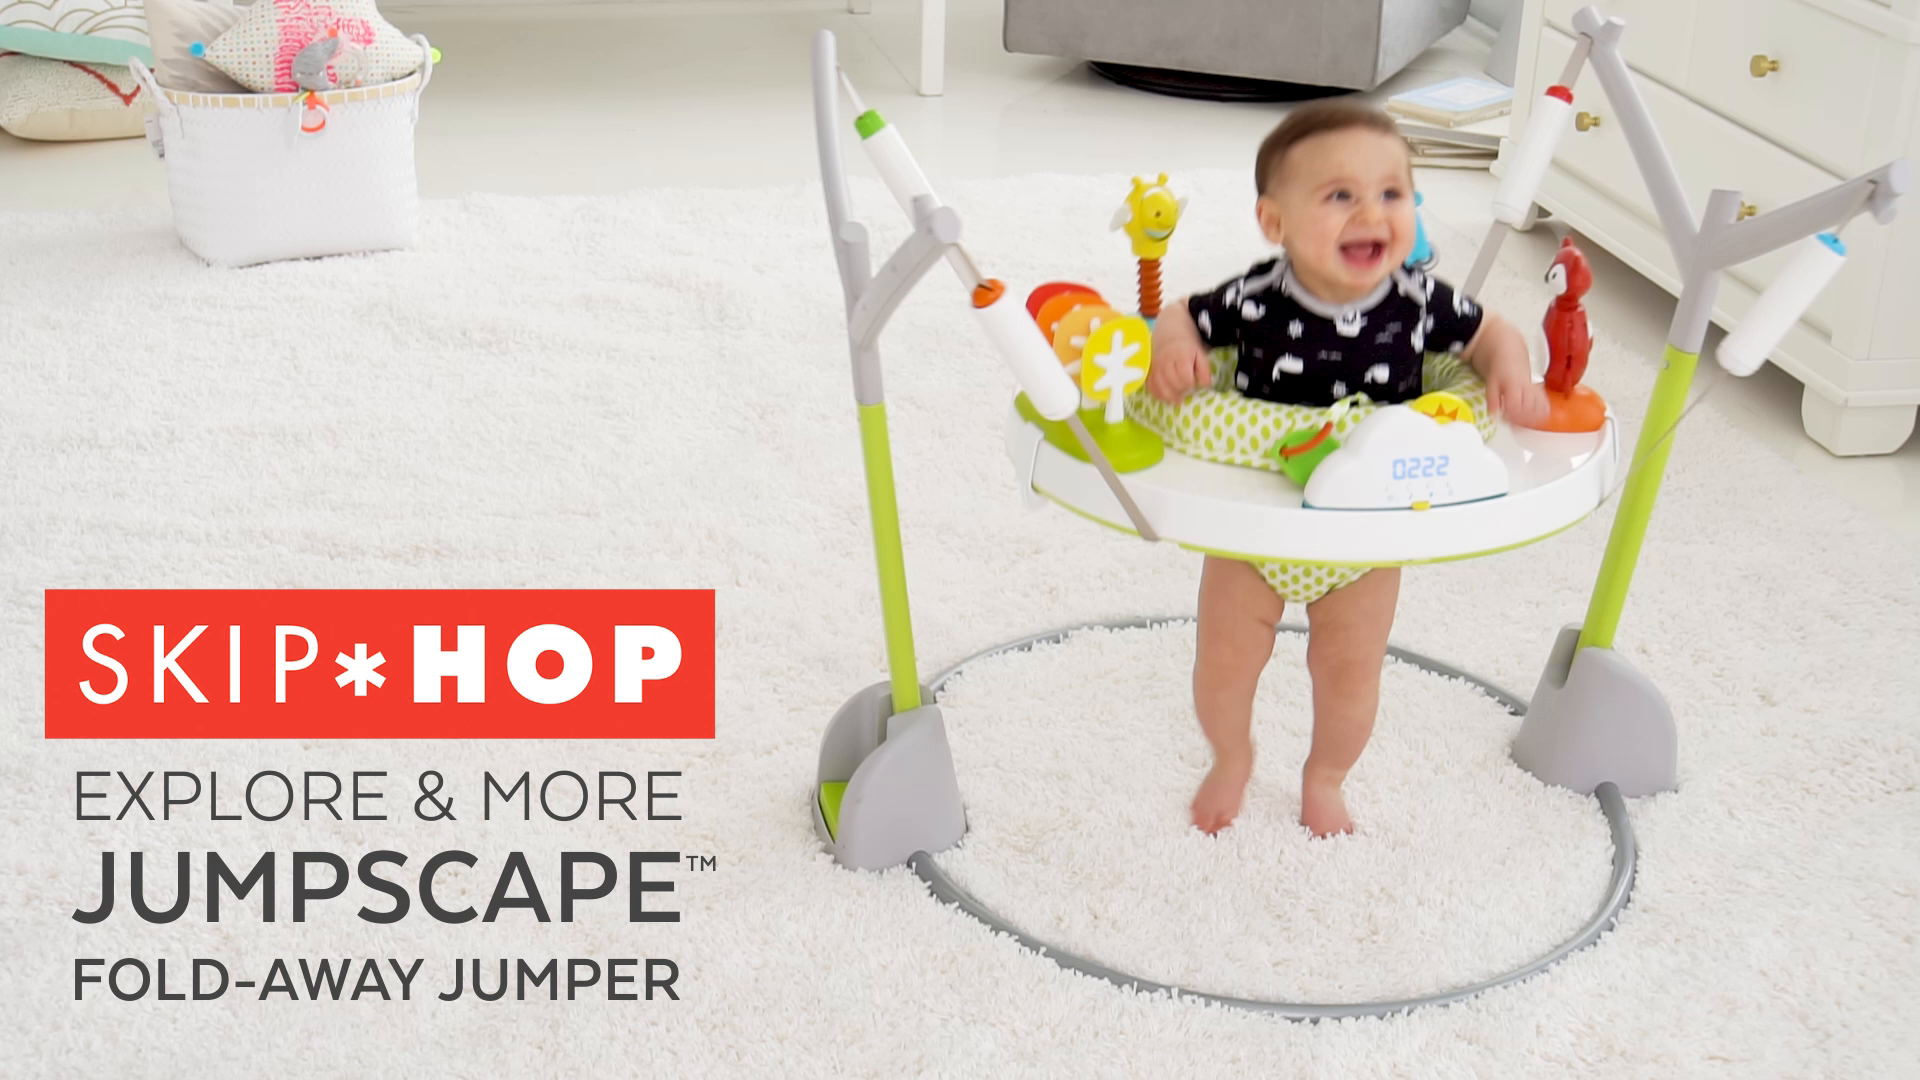 Multi Skip Hop Baby Bouncer Explore /& More Jumpscape Fold-Away Jumper with Bounce Counter